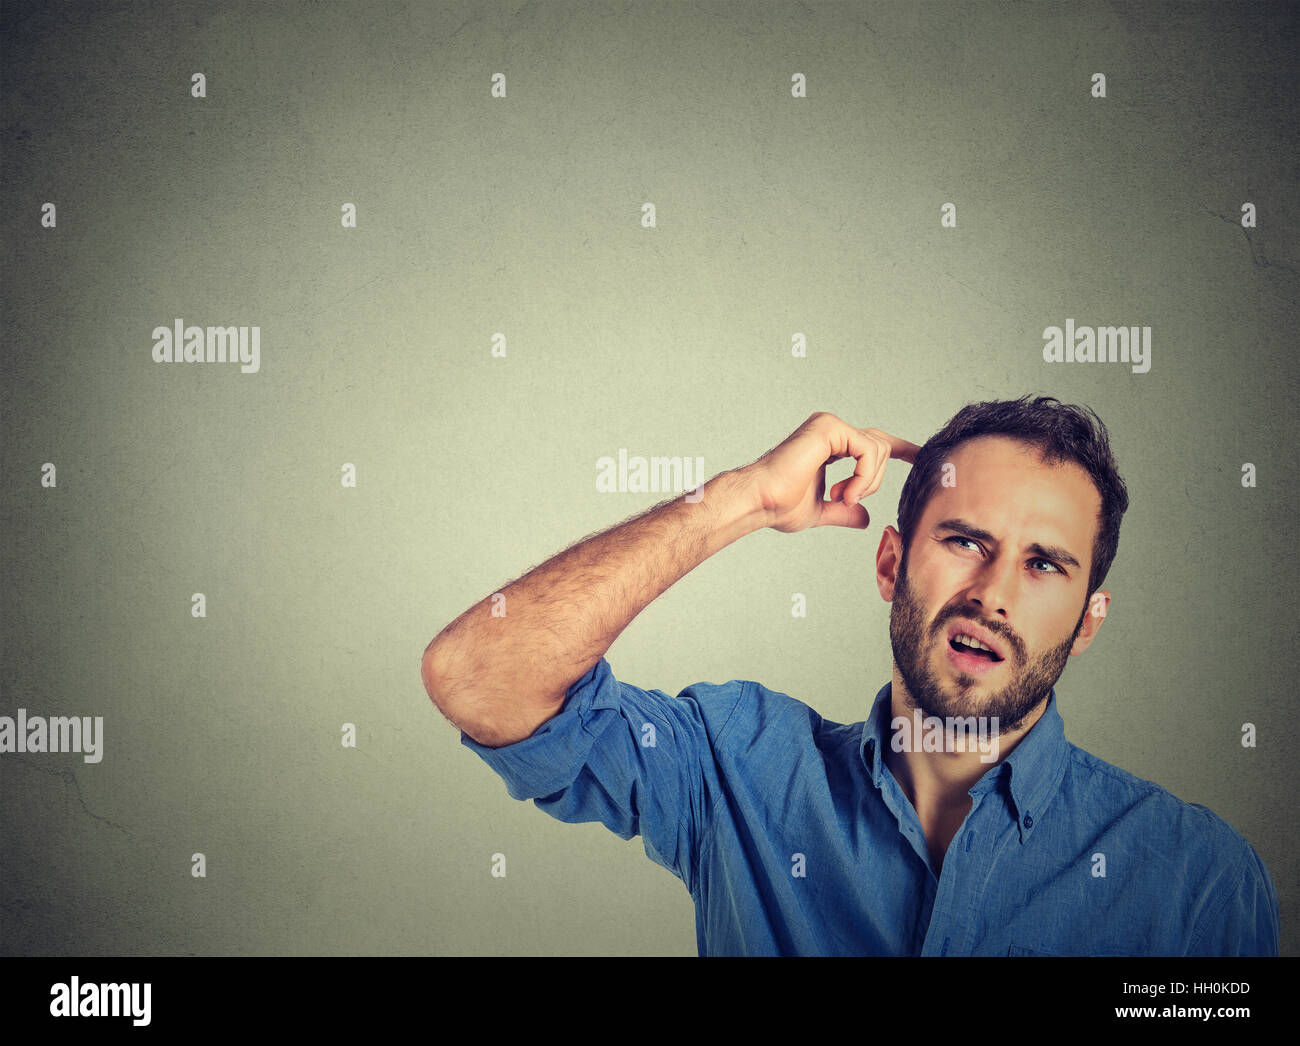 man scratching head, thinking deeply about something, looking up, isolated on gray background. Human facial expression, Stock Photo